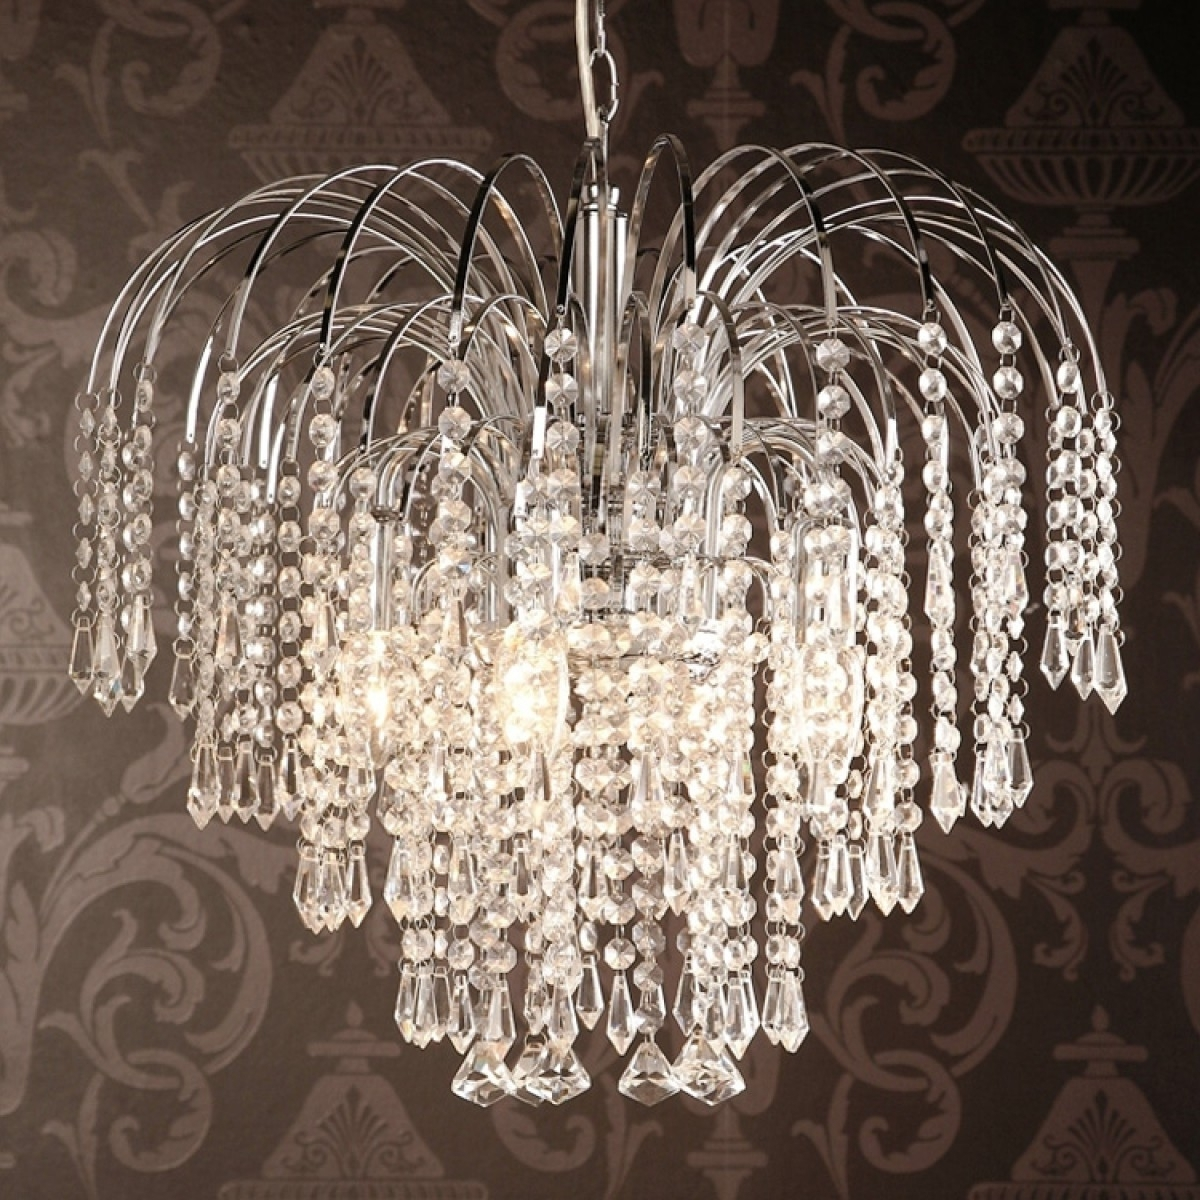 Crystal Waterfall Chandelier With Regard To Best And Newest Four Light Chrome Crystal Chandelier (View 6 of 20)